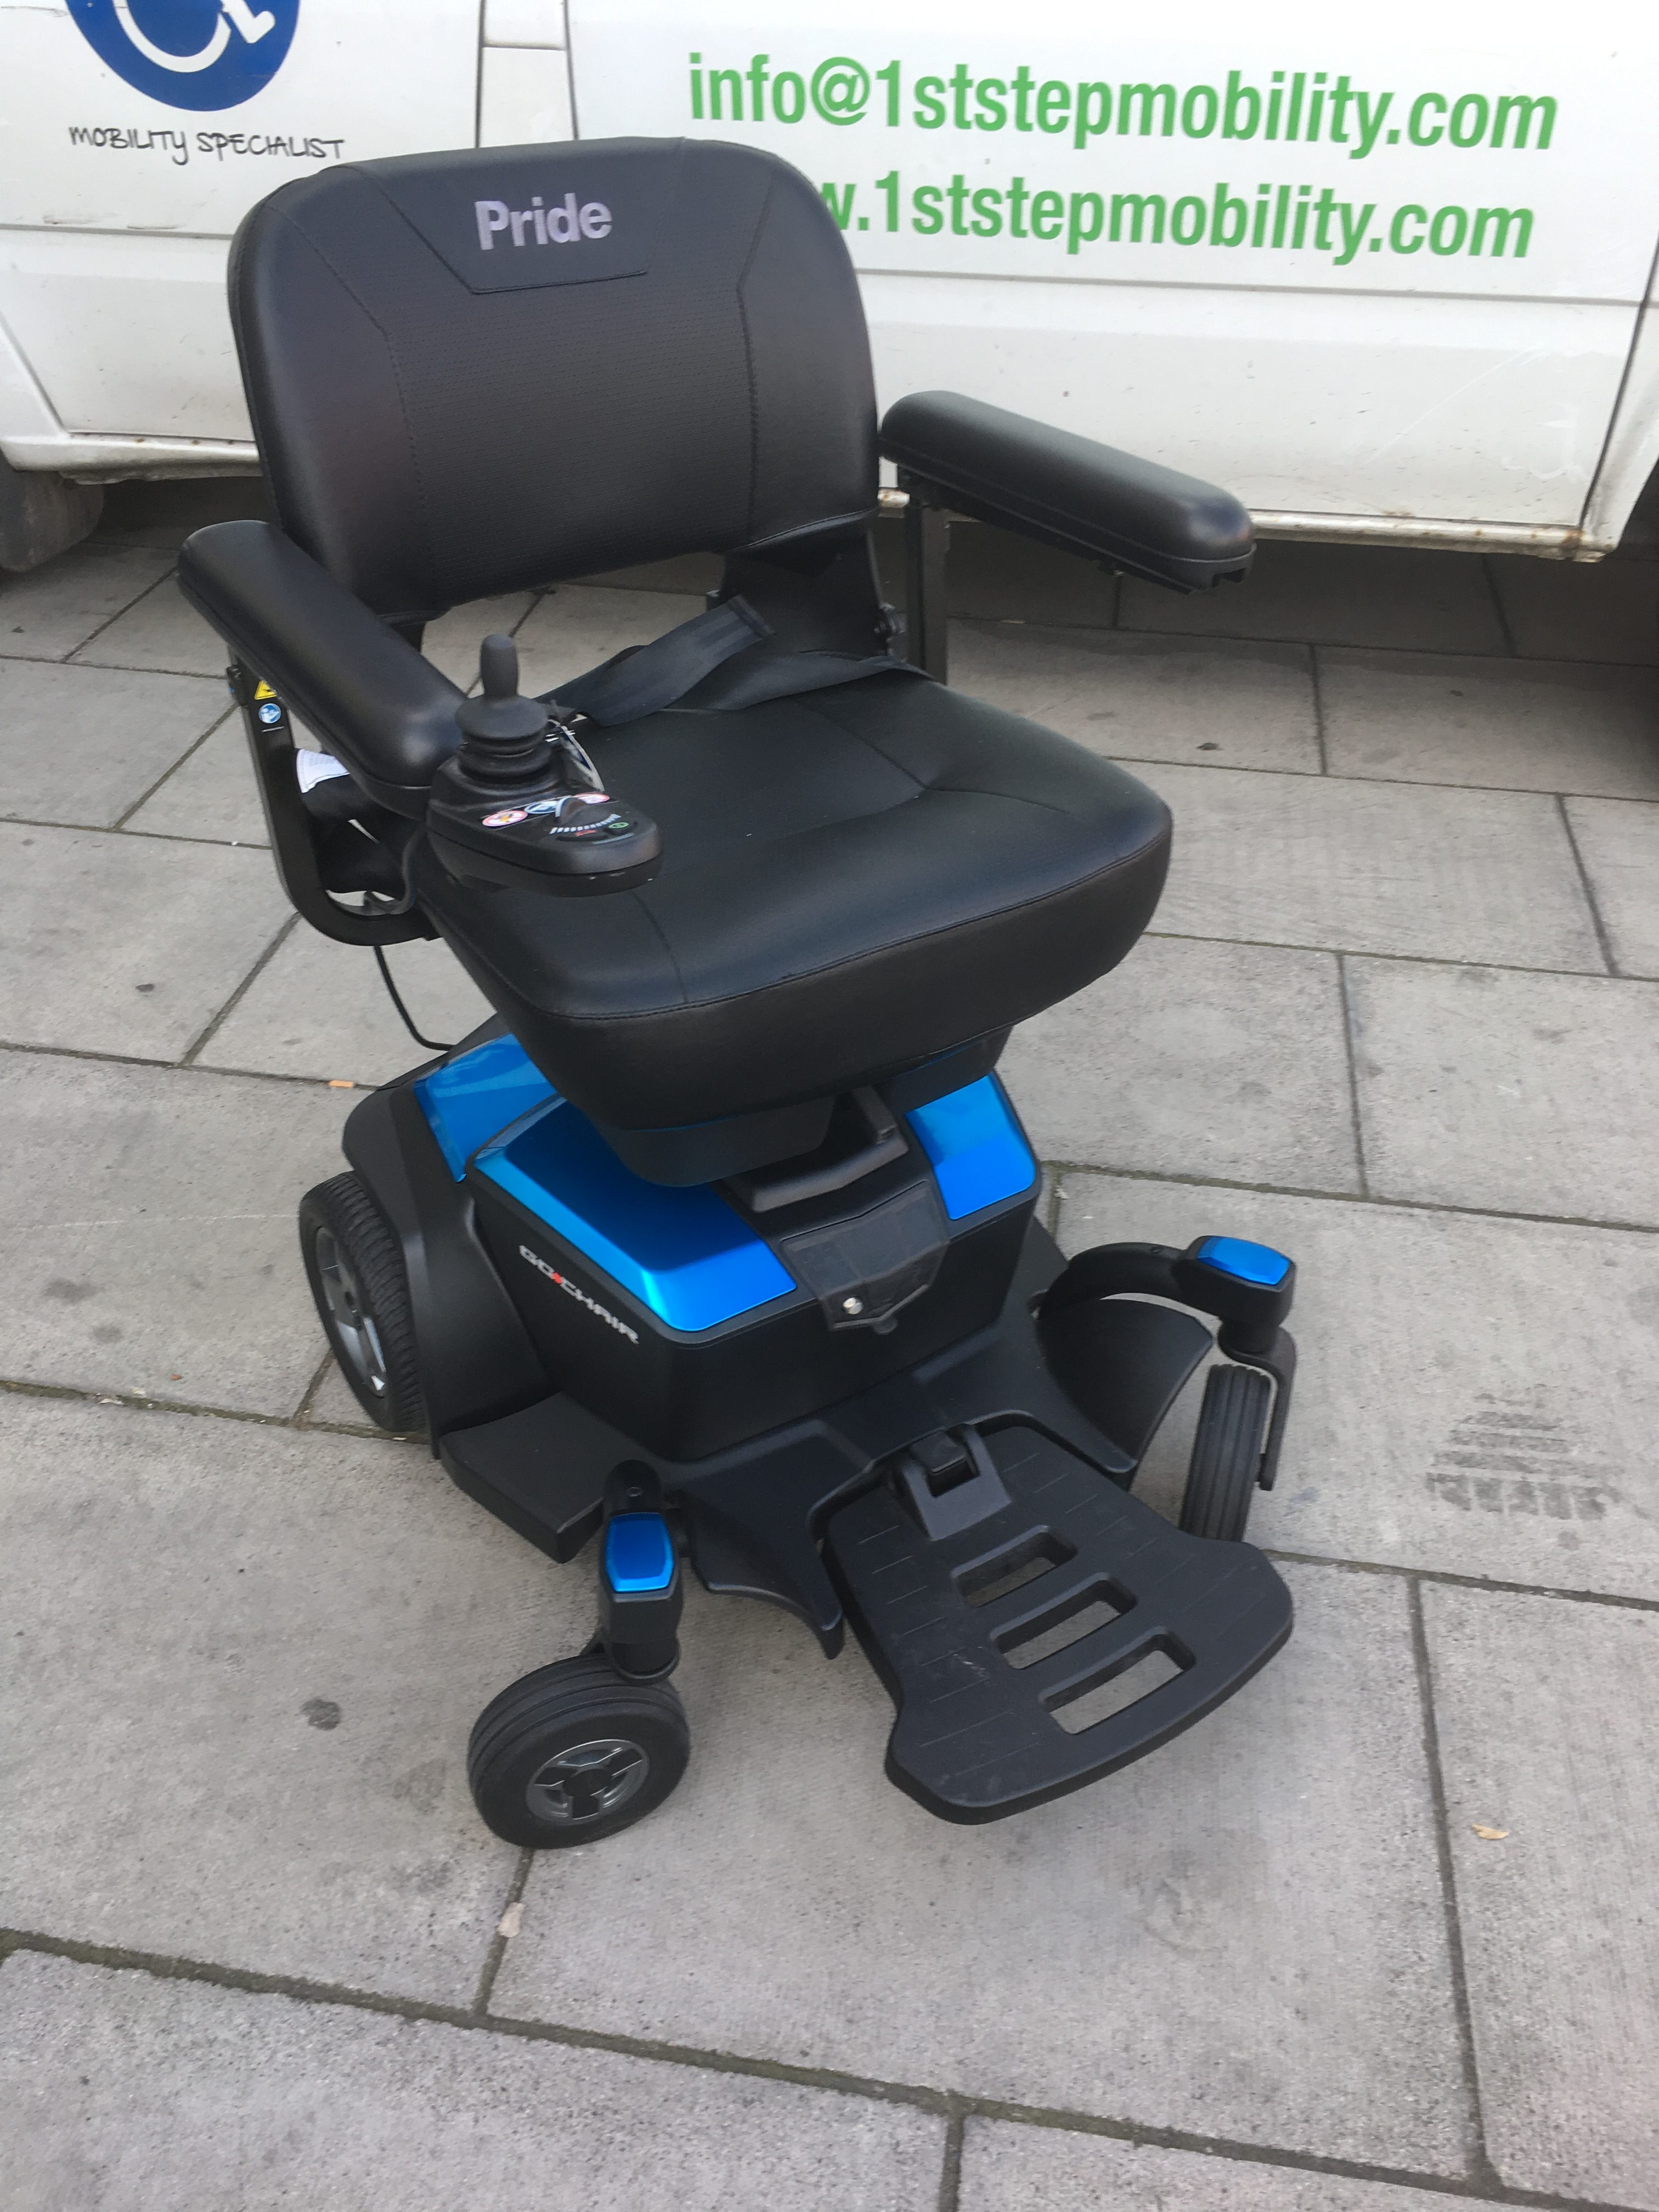 2nd Hand Pride Go Chair 1st Step Mobility